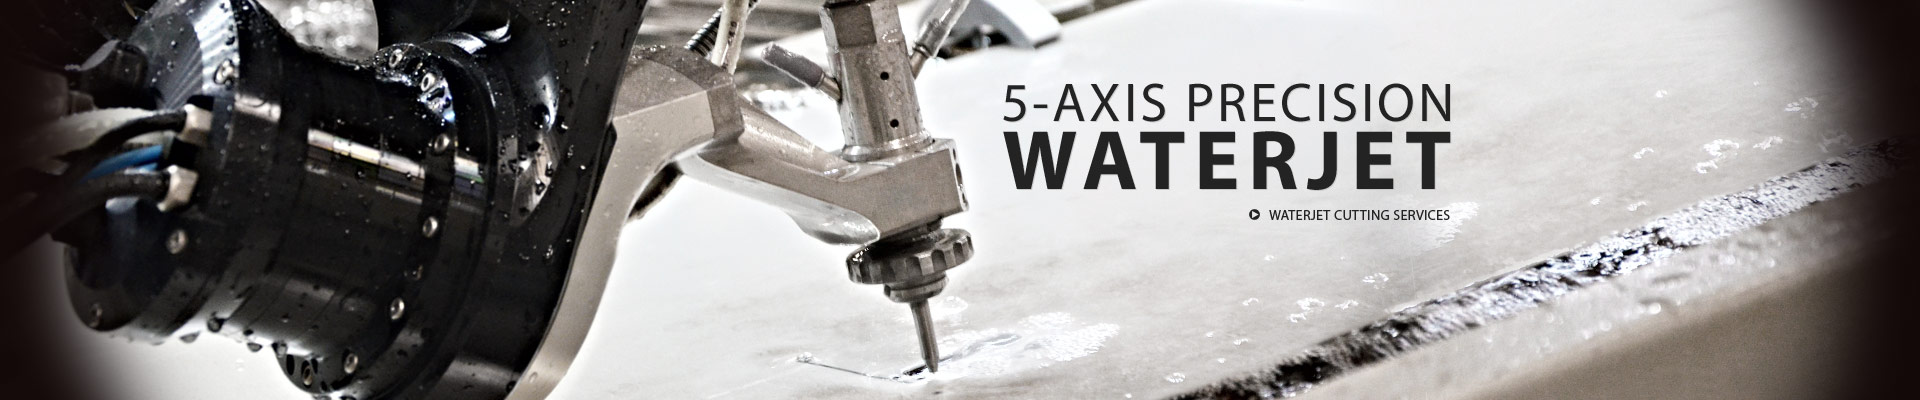 5 Axis Waterjet | Waterjet Cutting Services